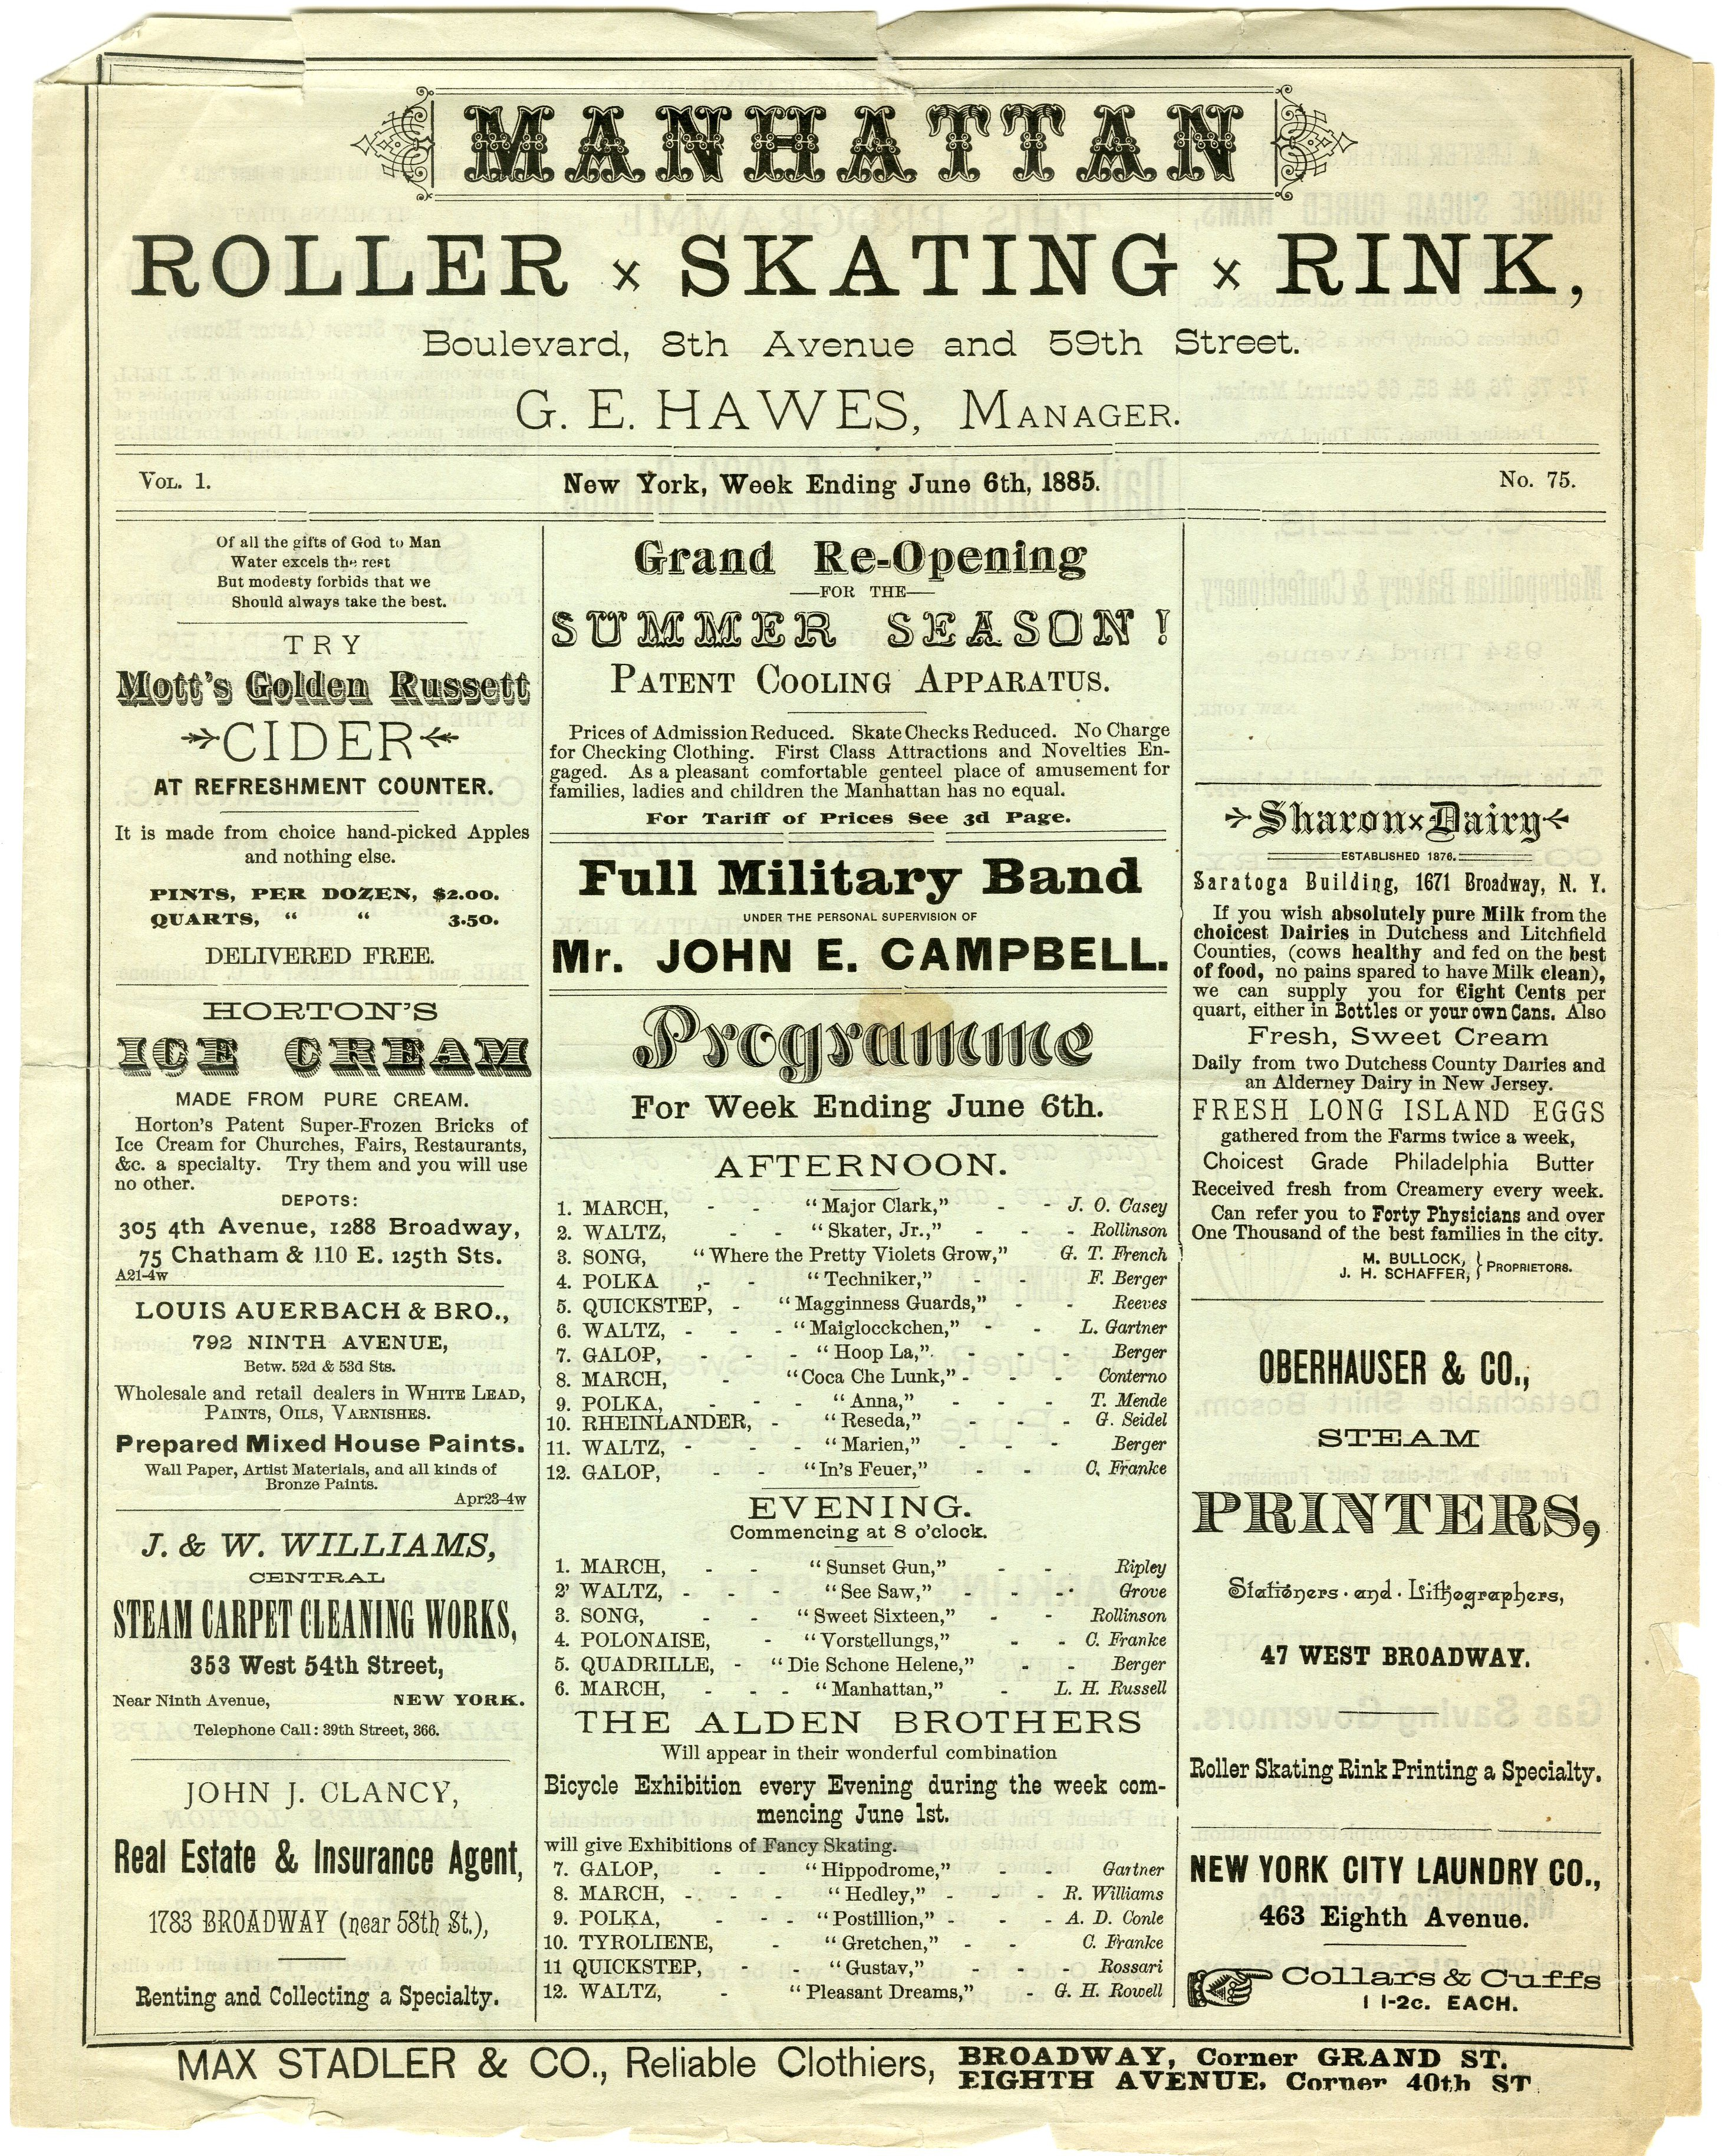 Roller skating rink westchester ny - Manhattan Roller Skating Rink 1885 In The Collection On Culture And Entertainment Museum